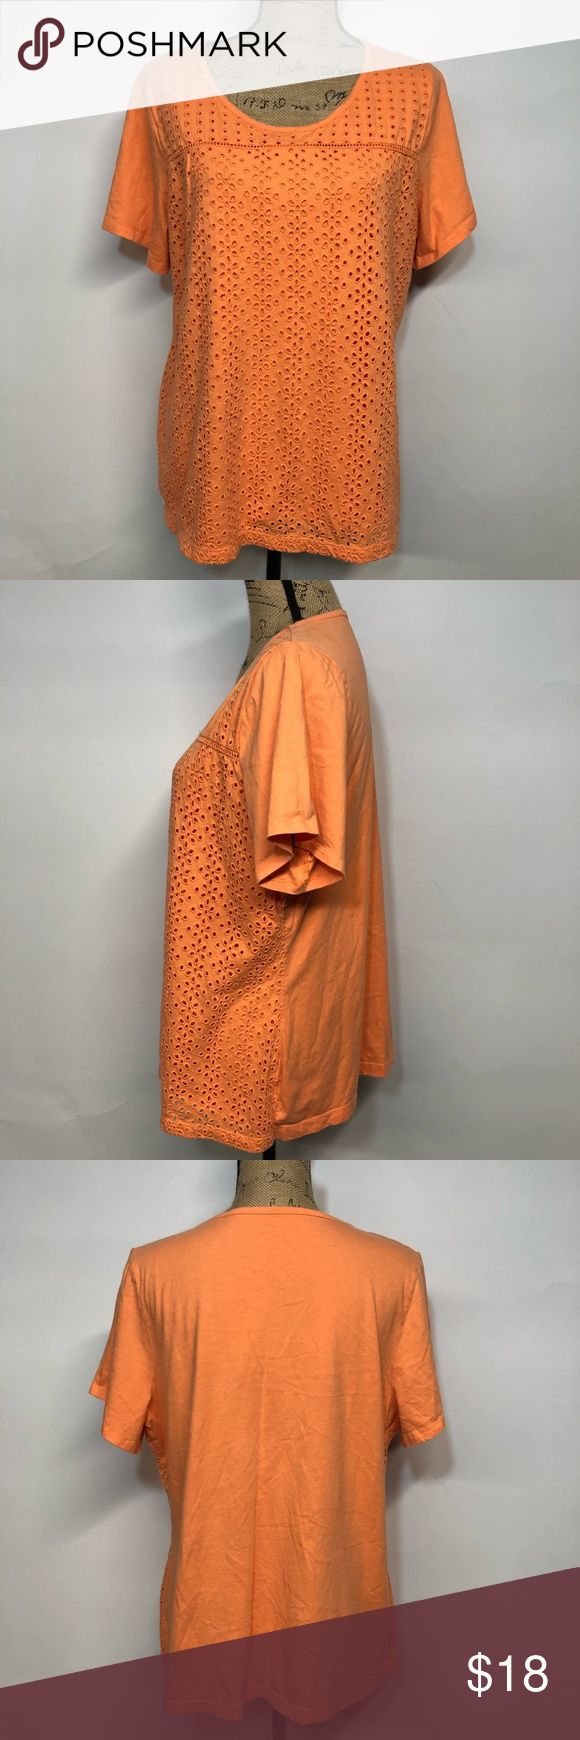 """Croft and Barrow Eyelet Front Short Sleeve Tee Posh Thrift Shop Thanks for stopping by!!! Item: Croft and Barrow Women's Plus Size 1X Eyelet Front Short Sleeve Top Orange Condition: In good used condition.  Please refer to images for more details about this item. If you have any questions please feel free to ask. All measurements are taken with the item laying and are approximate.  Armpit to Armpit: 23"""" Shoulder to Hem: 26"""" croft & barrow Tops Tees - Short Sleeve"""